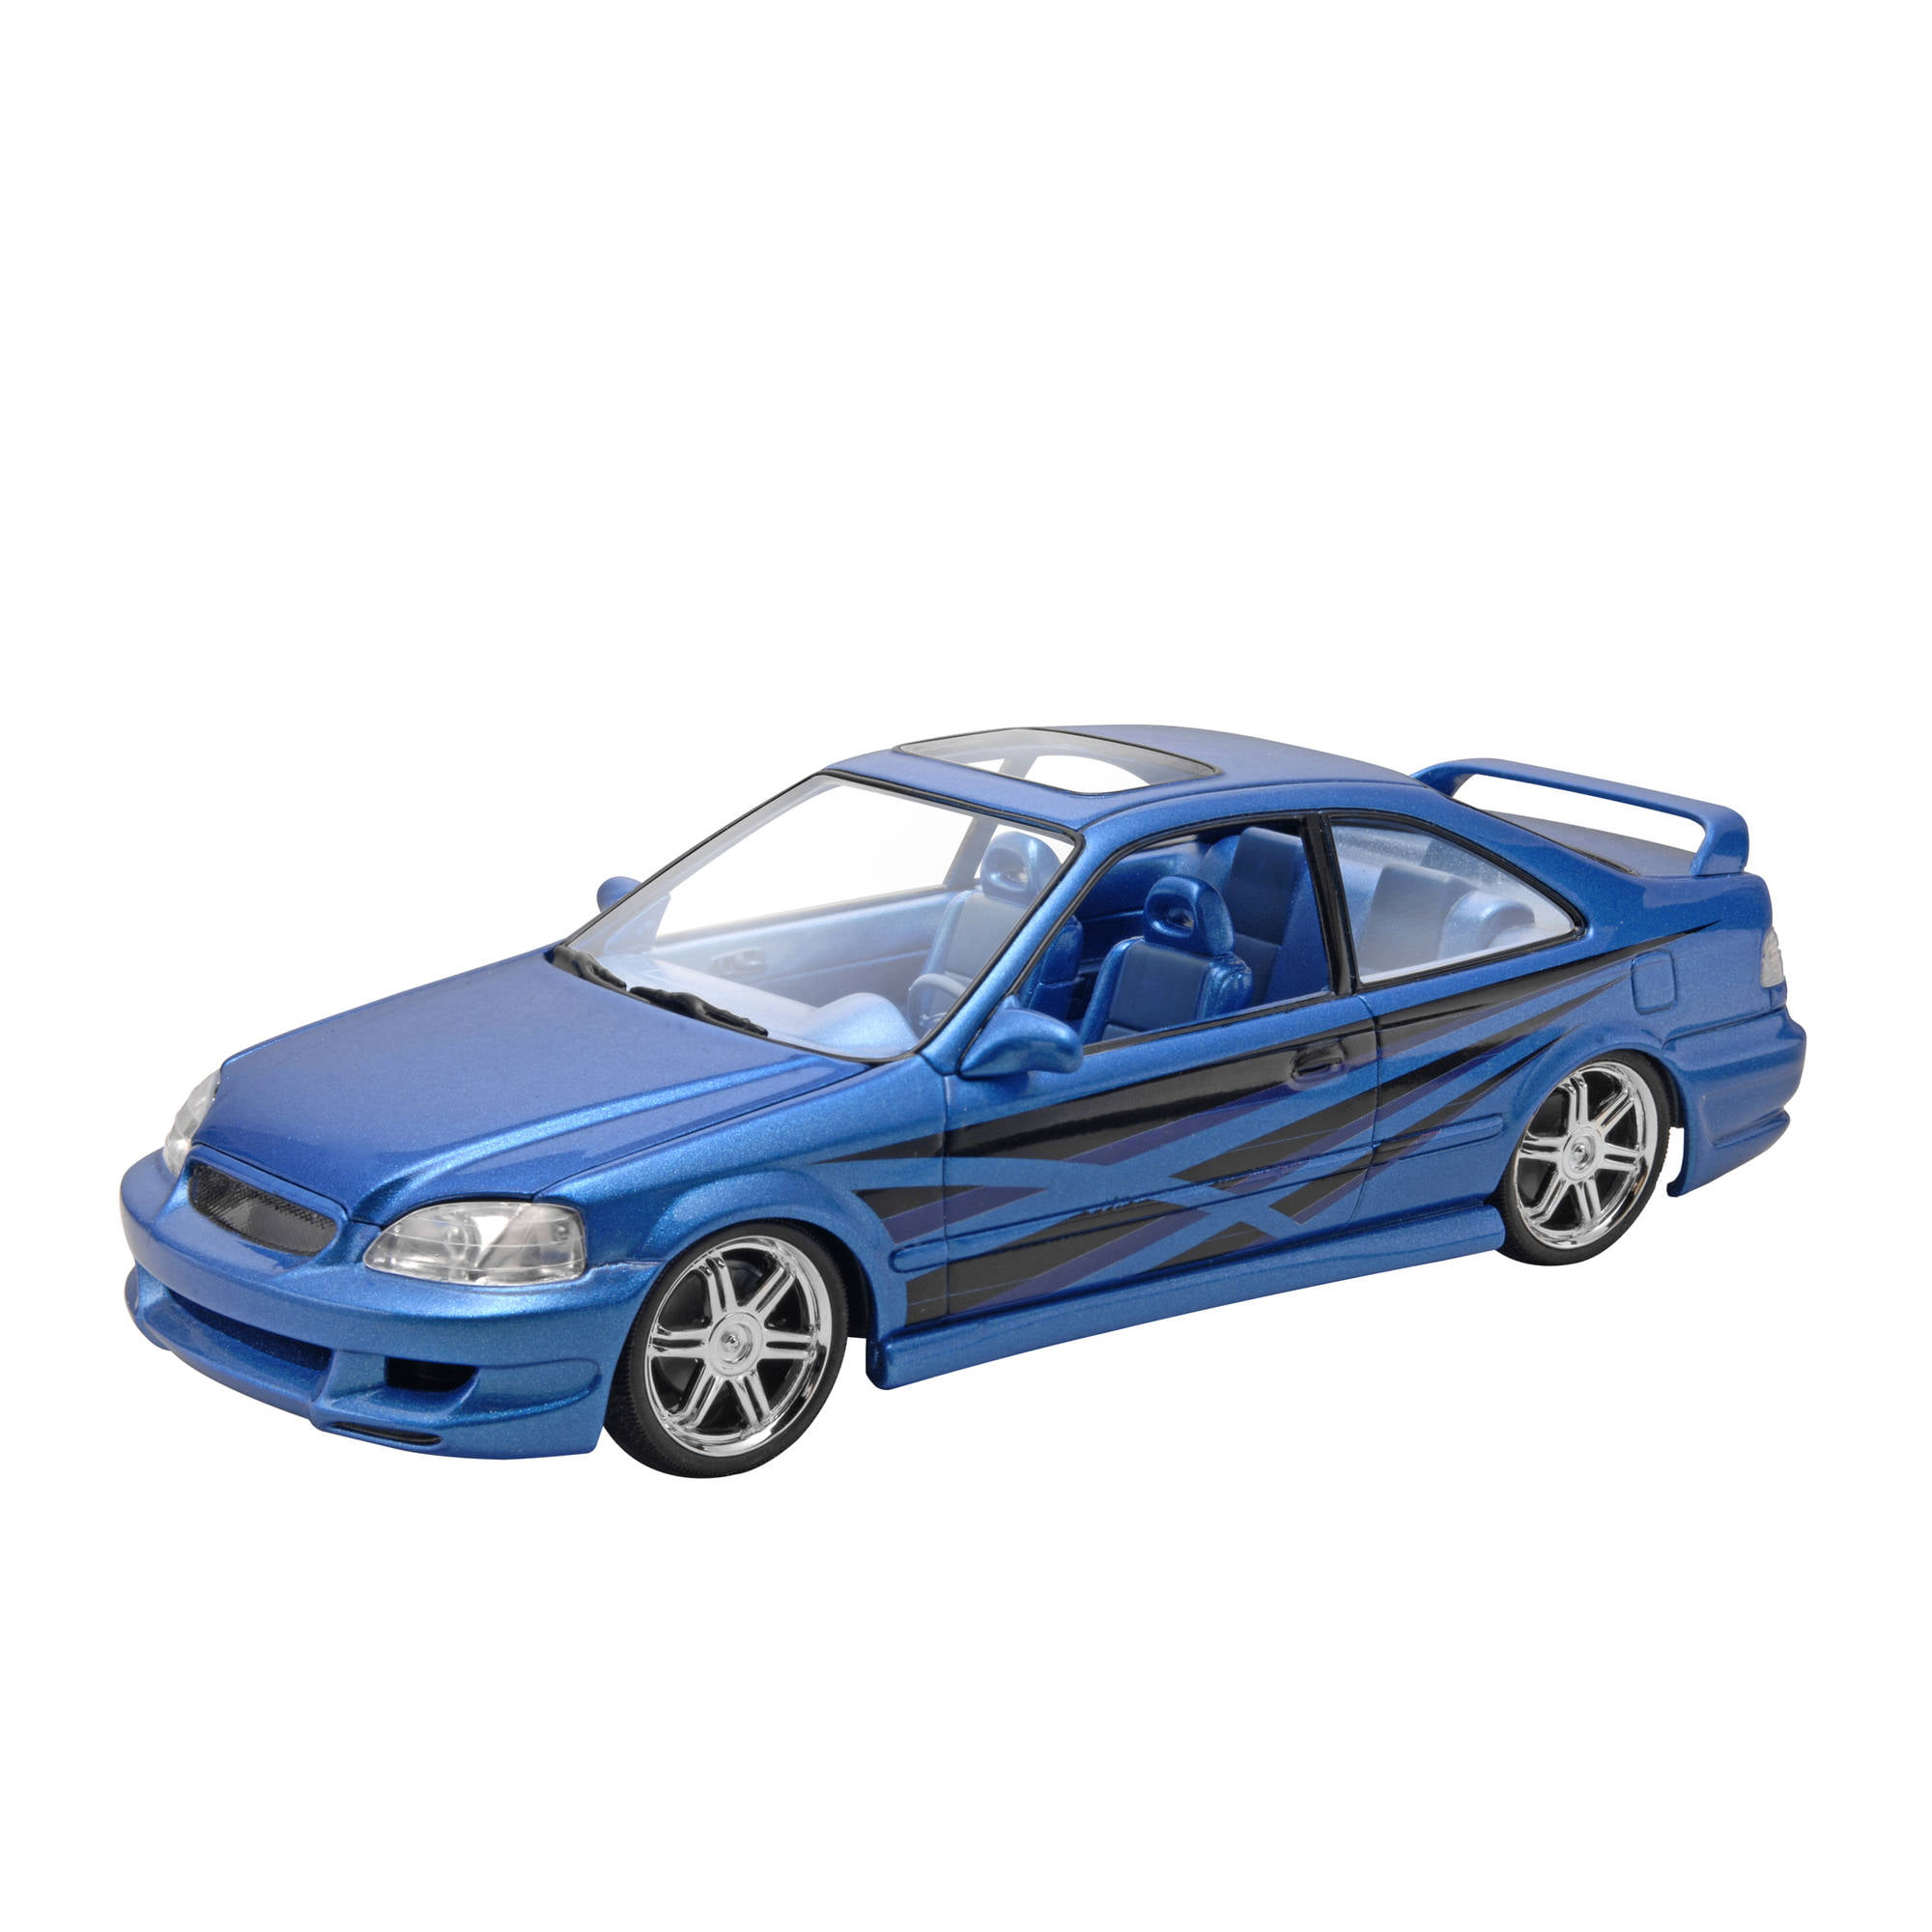 Revell 1:25 Honda Civic Si Coupe by Revell